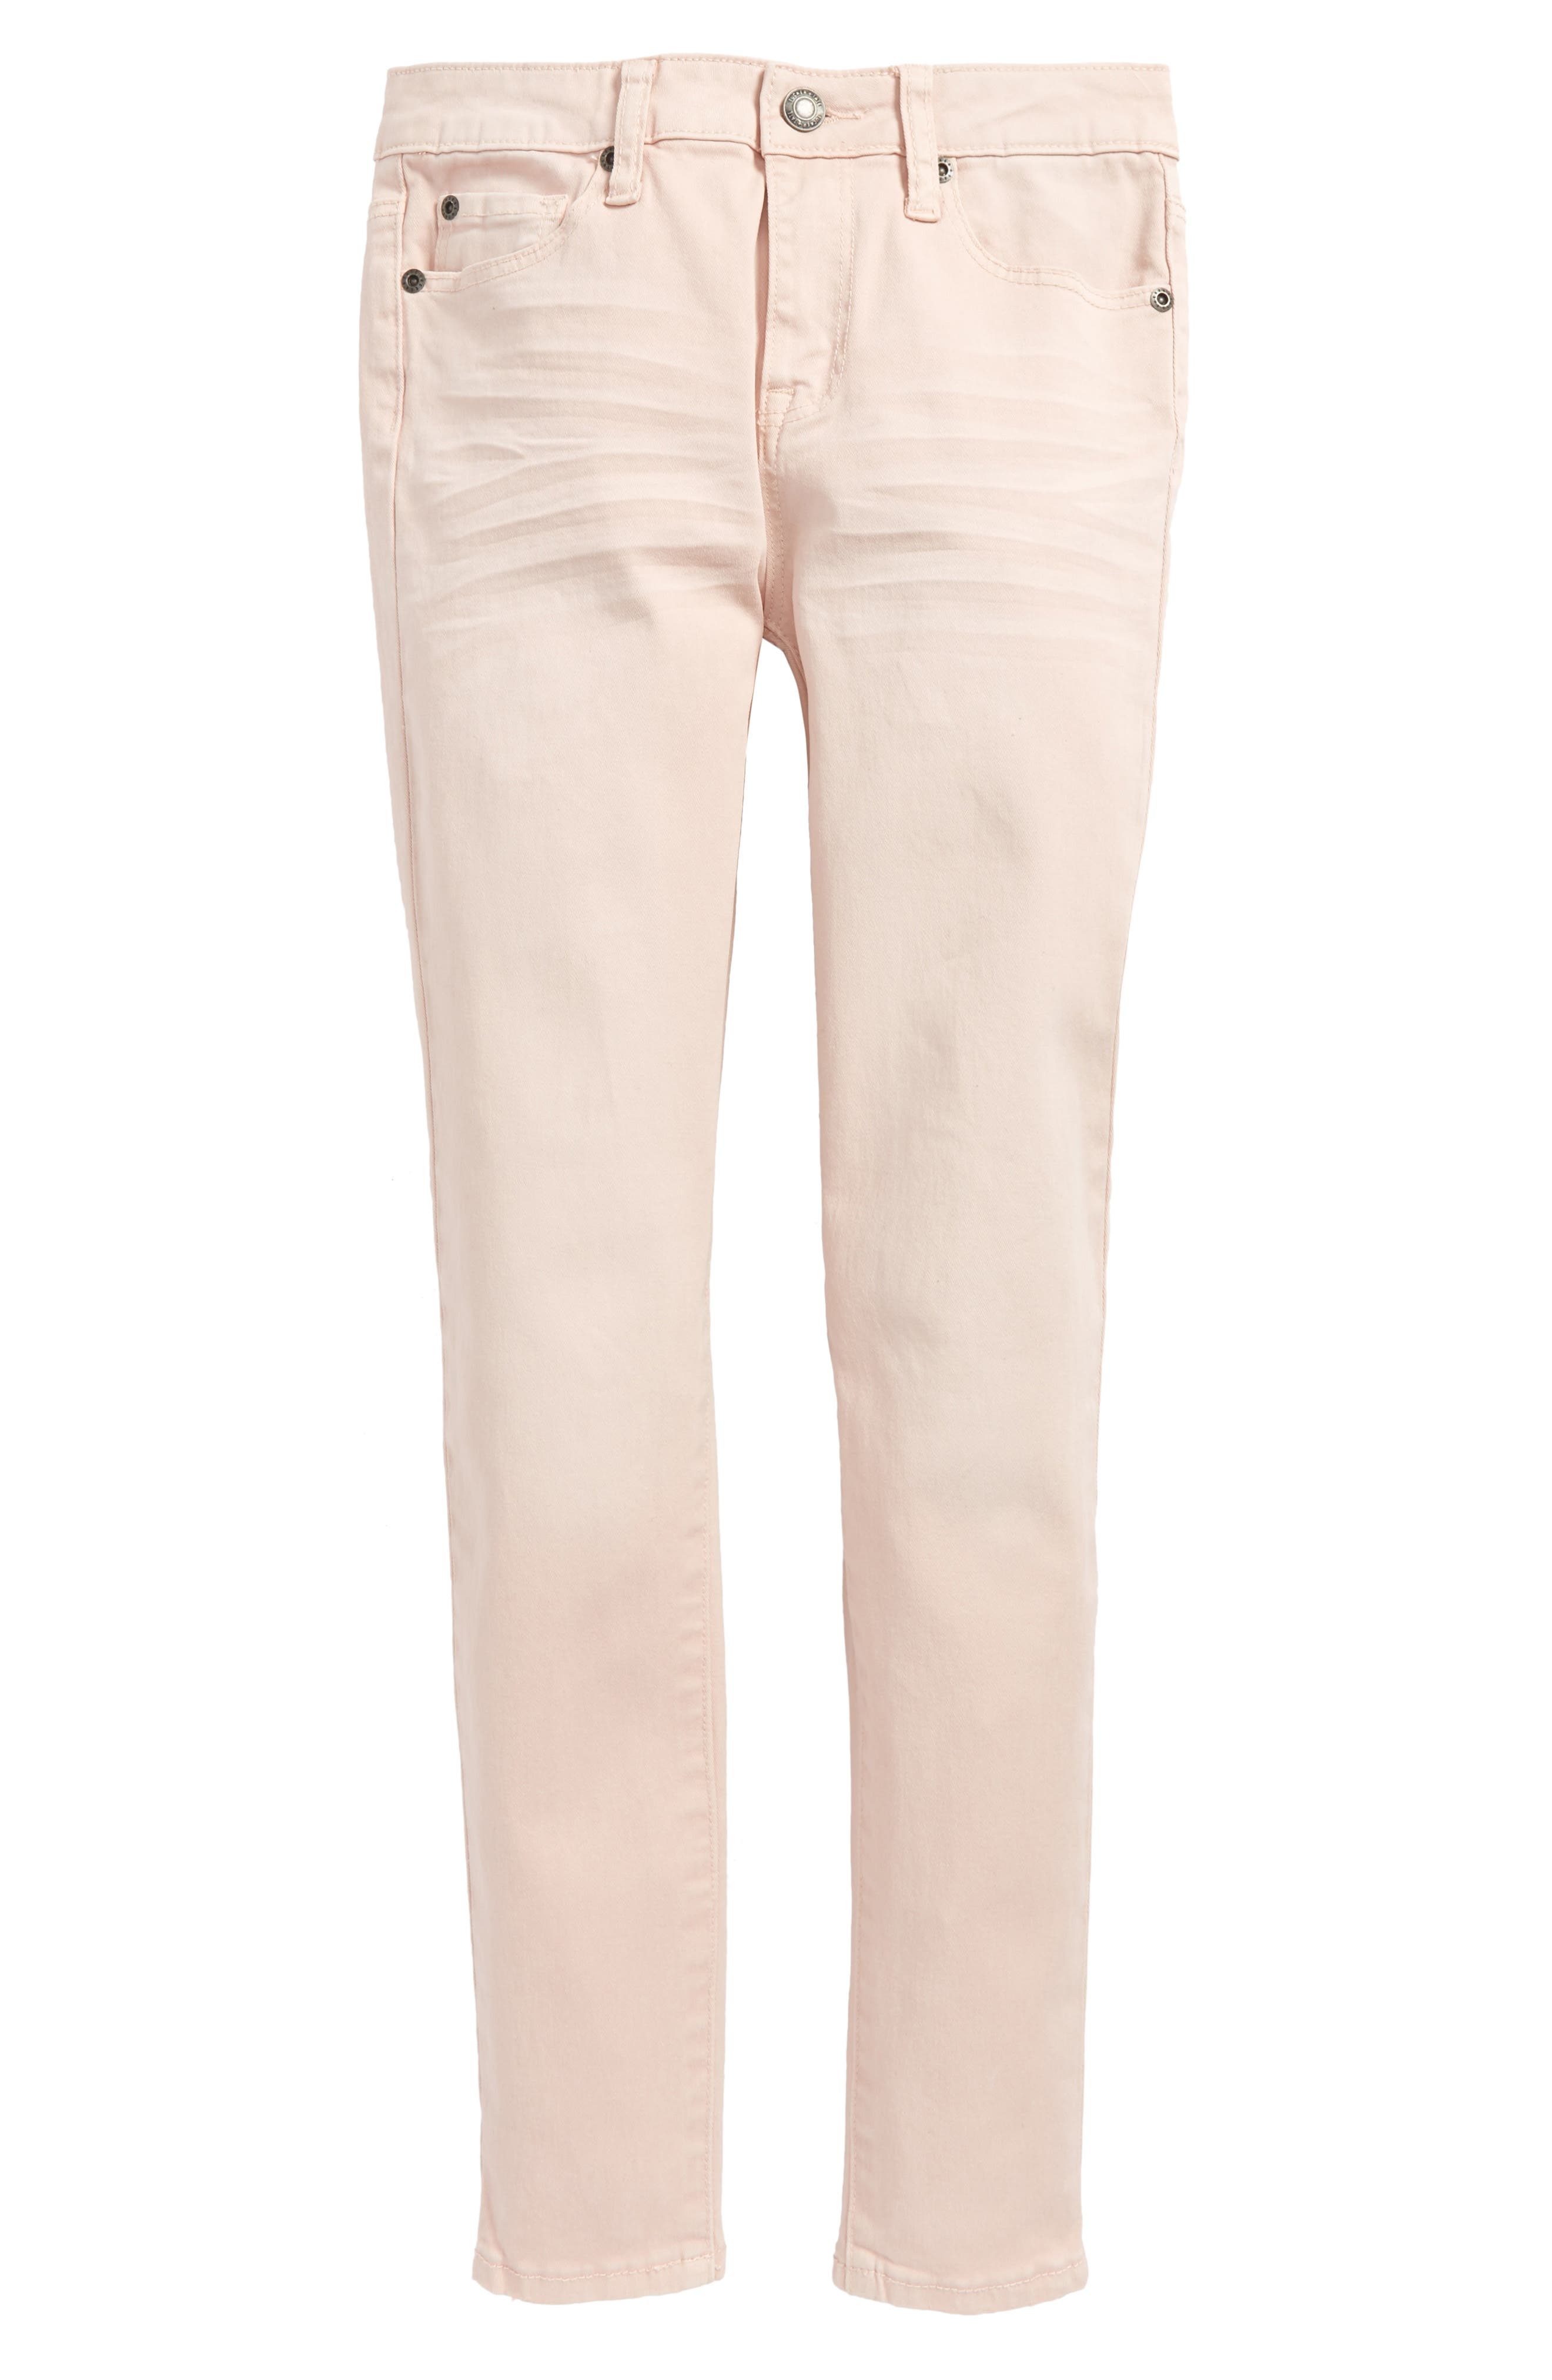 Colored Ankle Jeans,                             Main thumbnail 1, color,                             Pink Pixie Wash